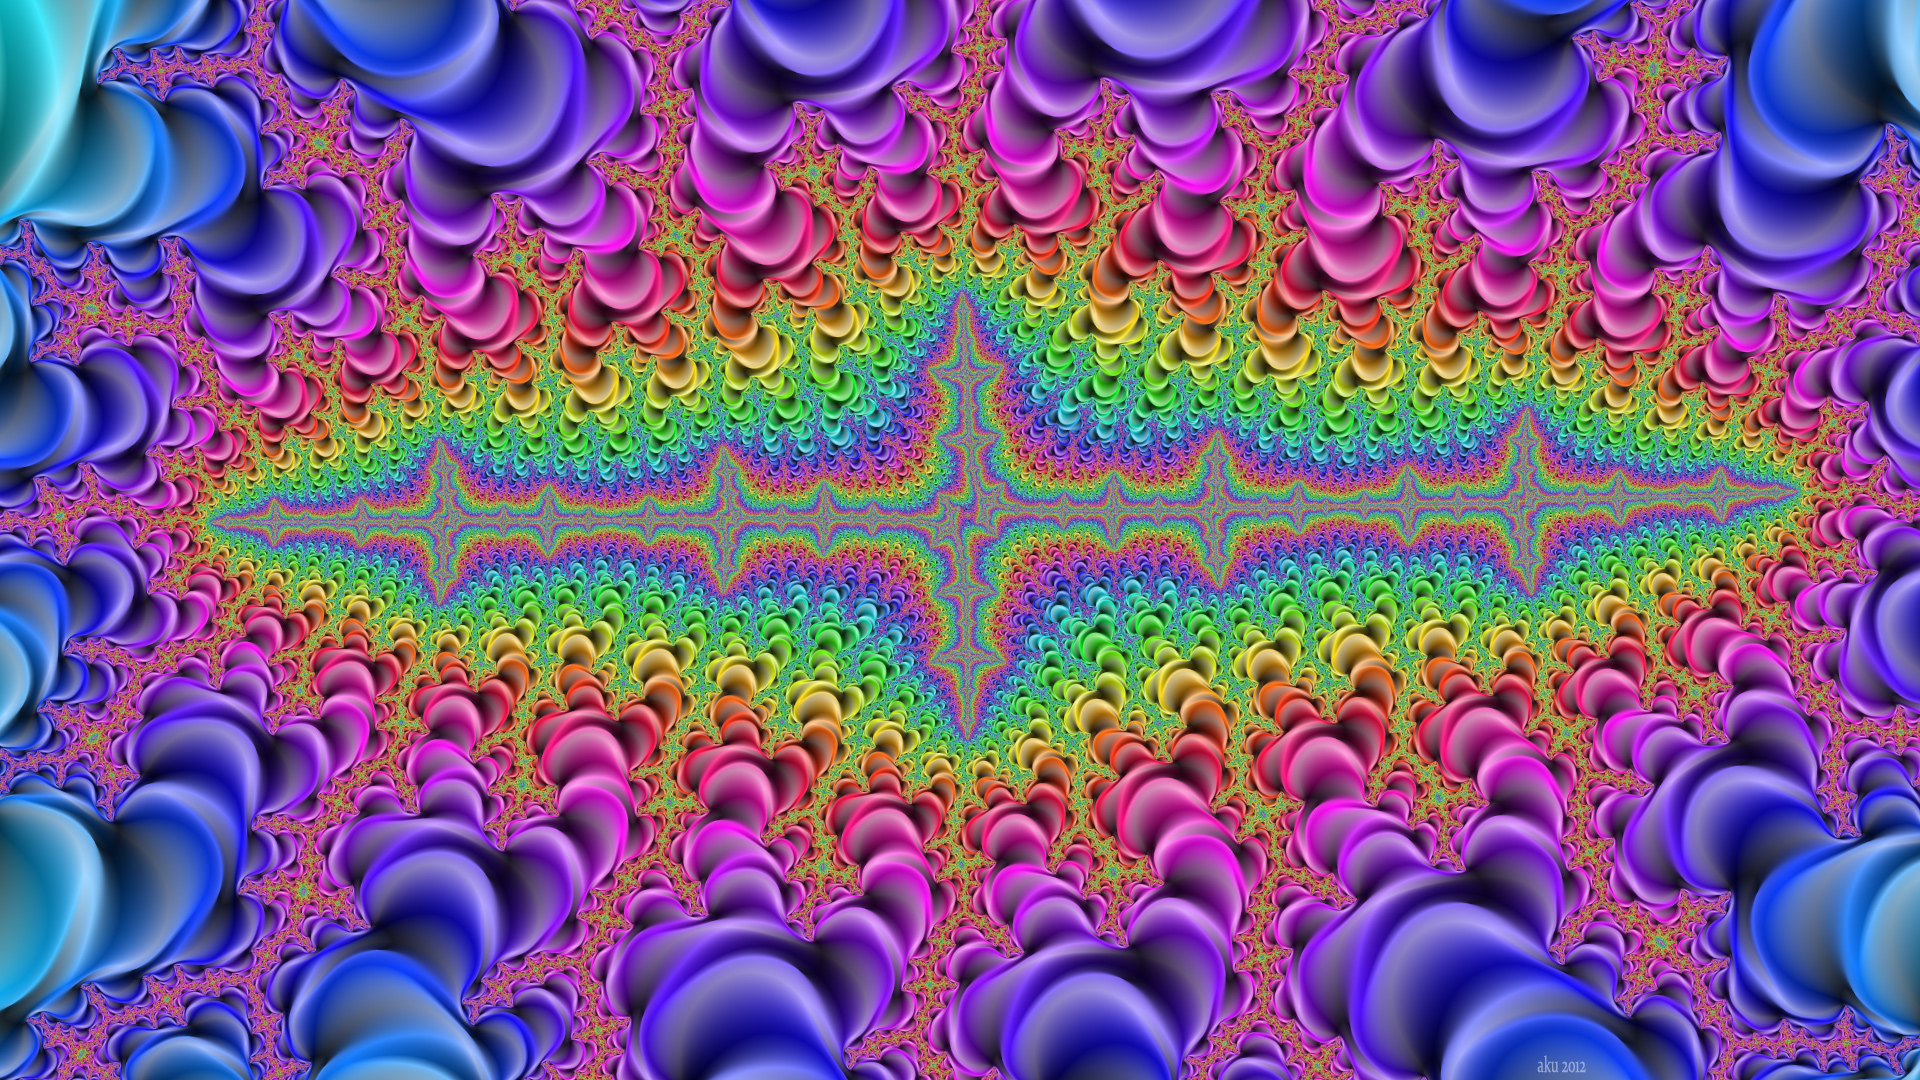 Psychedelic Computer Wallpapers, Desktop Backgrounds ...